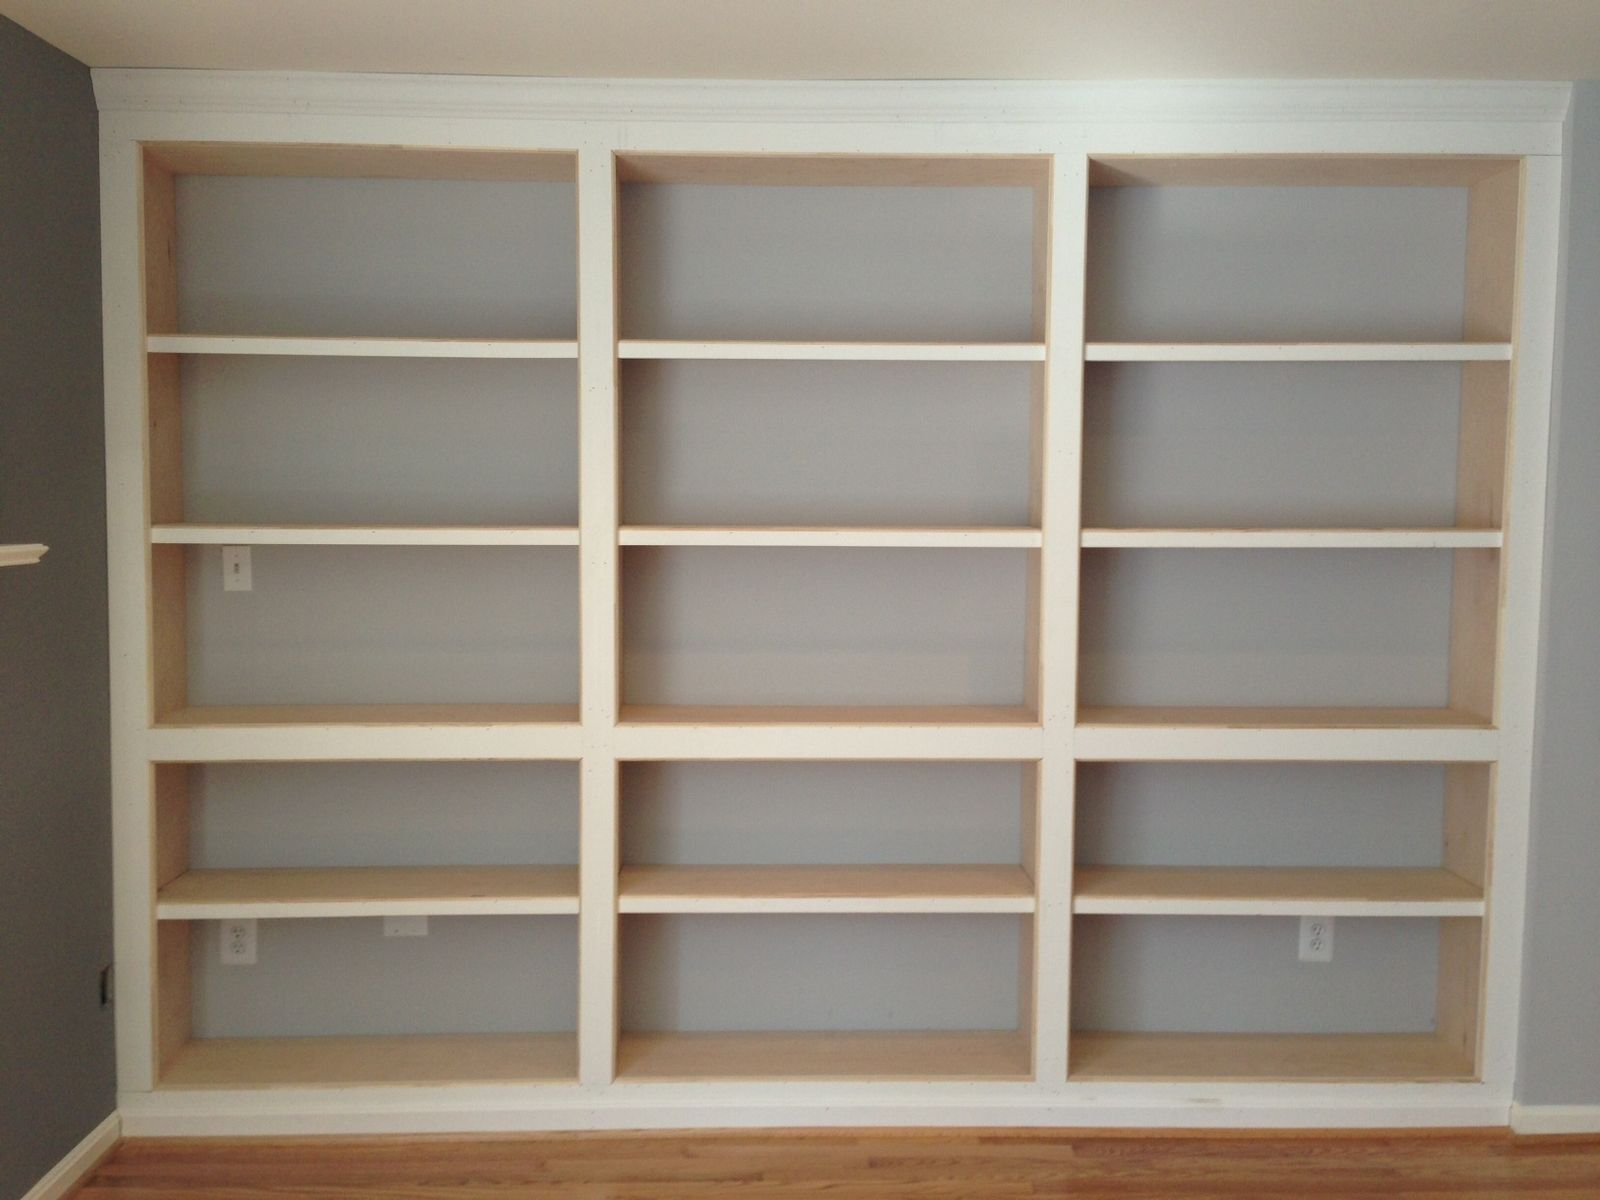 Hand Crafted Built-In Bookshelves, With Adjustable Shelves by PARZ Designs  | CustomMade.com